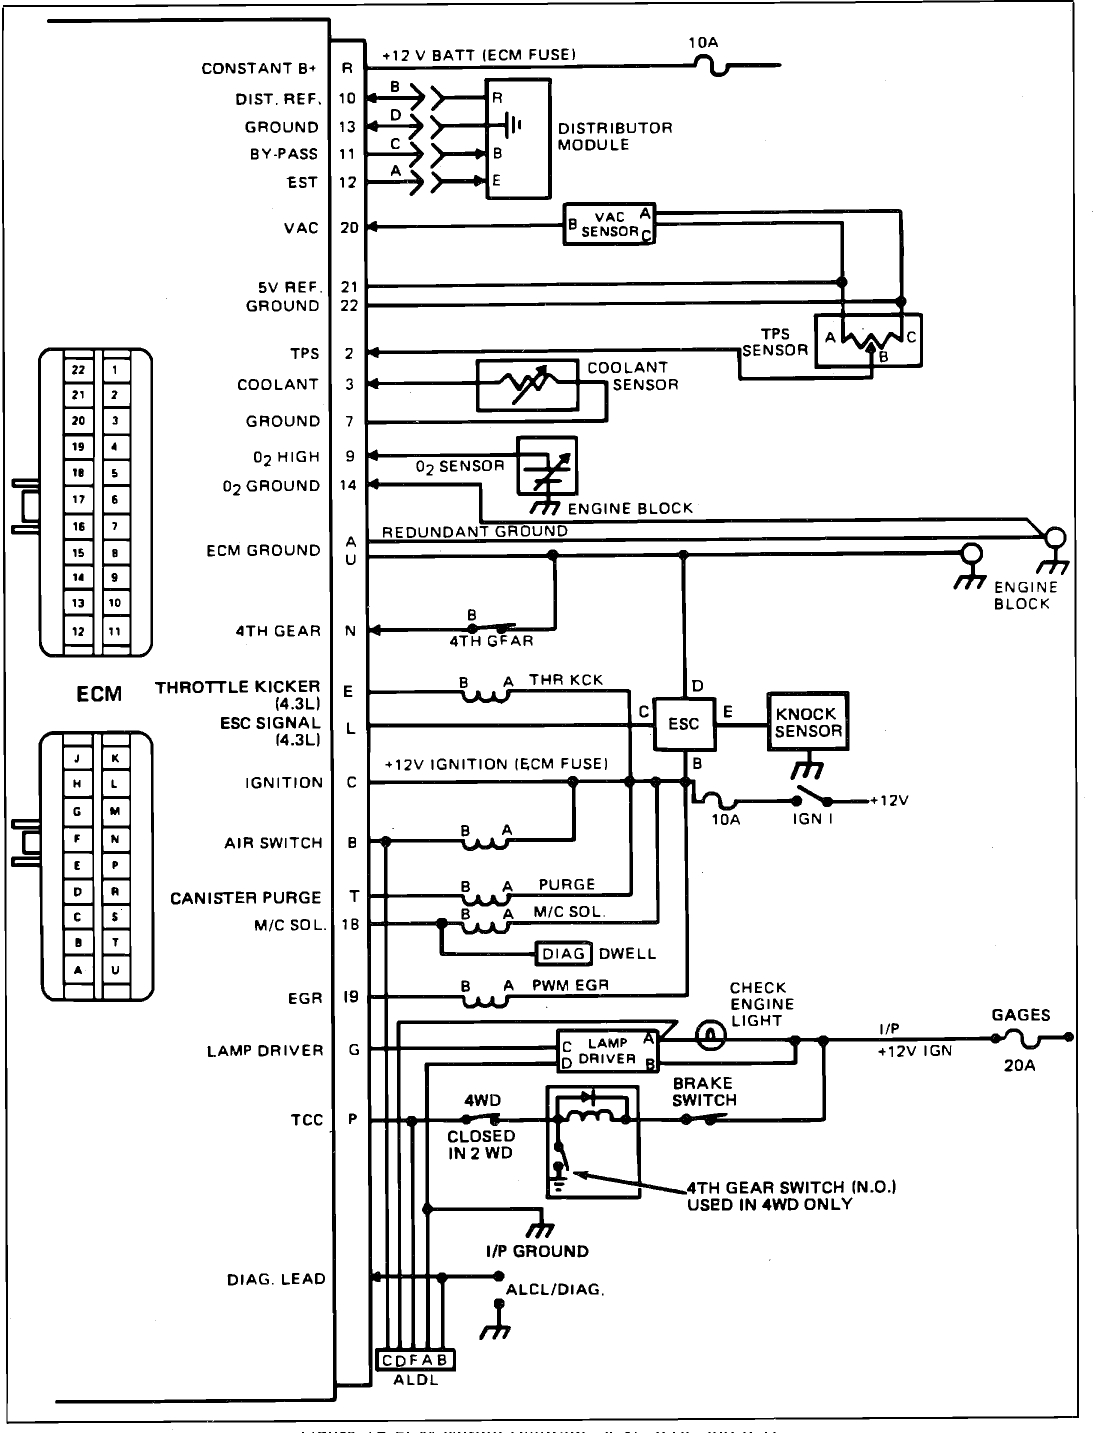 Chevy K1500 Fuse Box Wiring Library 1995 Chevy Blazer Fuse Box Diagram 1995  Chevy Fuse Box Diagram